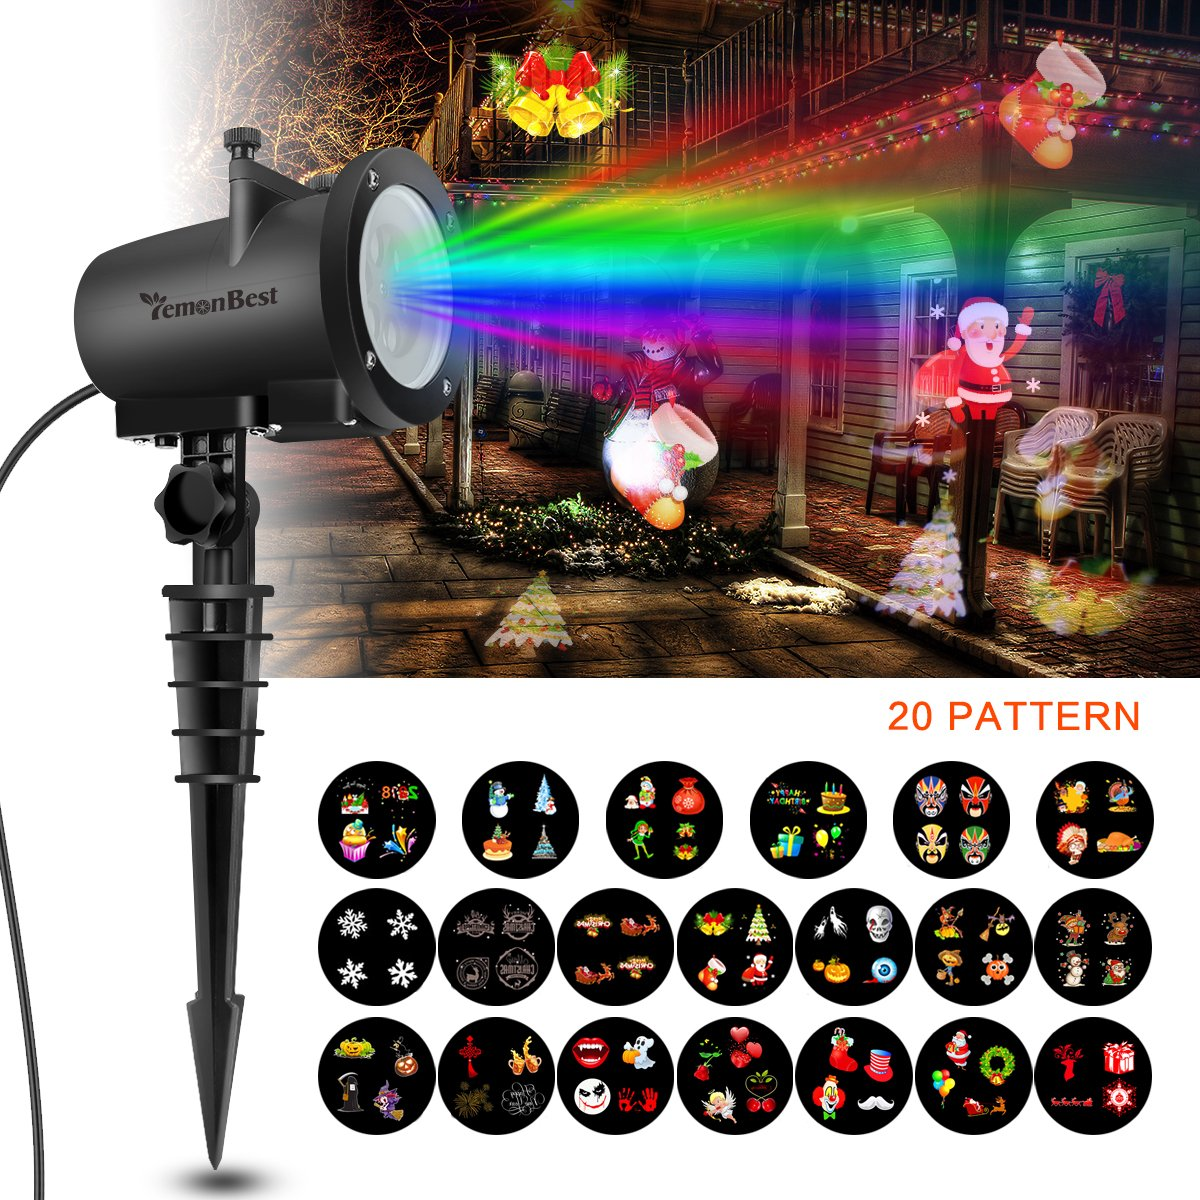 Projector Lights Outdoor&Indoor, 12W 20 Patterns Waterproof LED Projection Lamp with Remote Control for Birthday Party Wedding Holiday Decoration